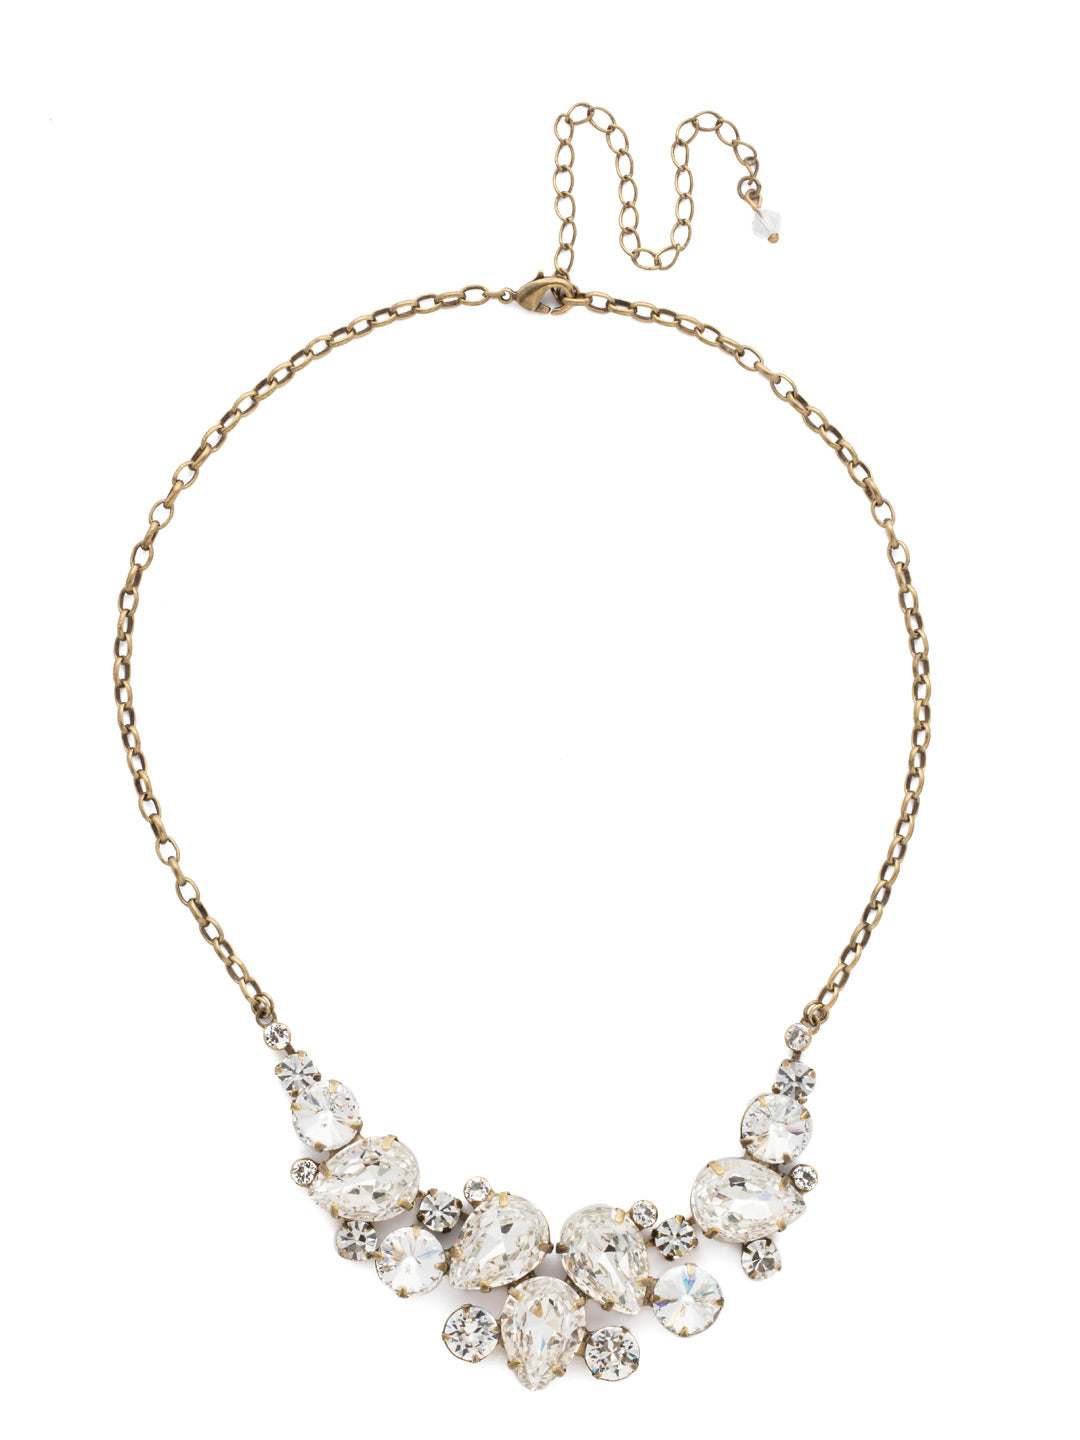 Nested Pear Statement Necklace - NDJ14AGCRY